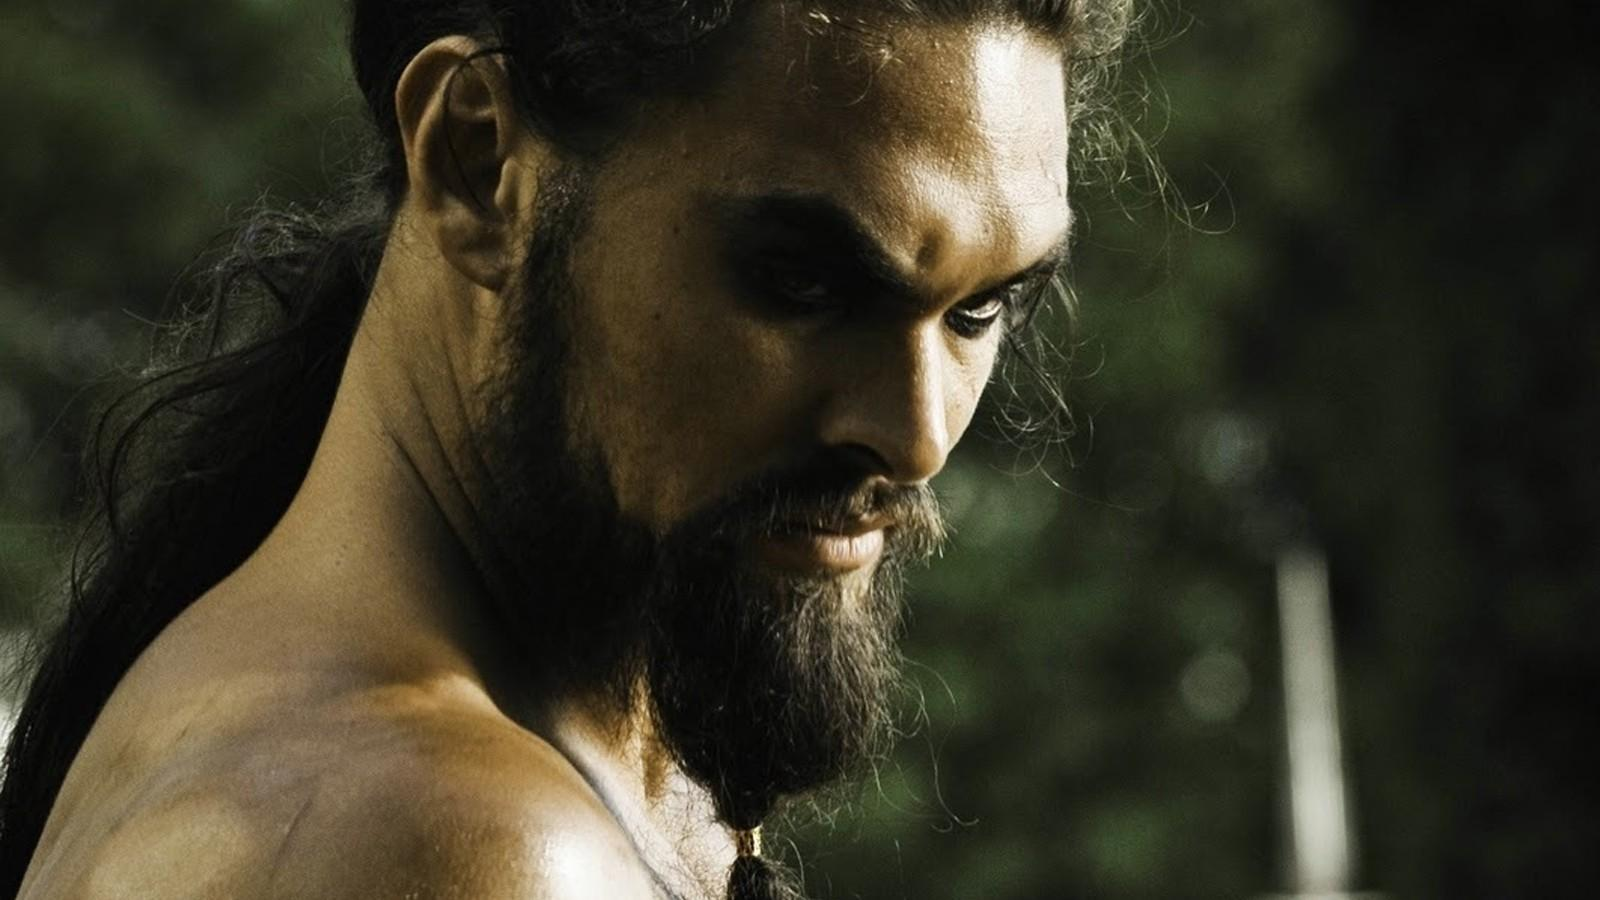 Jason Momoa wallpaper 1600x900